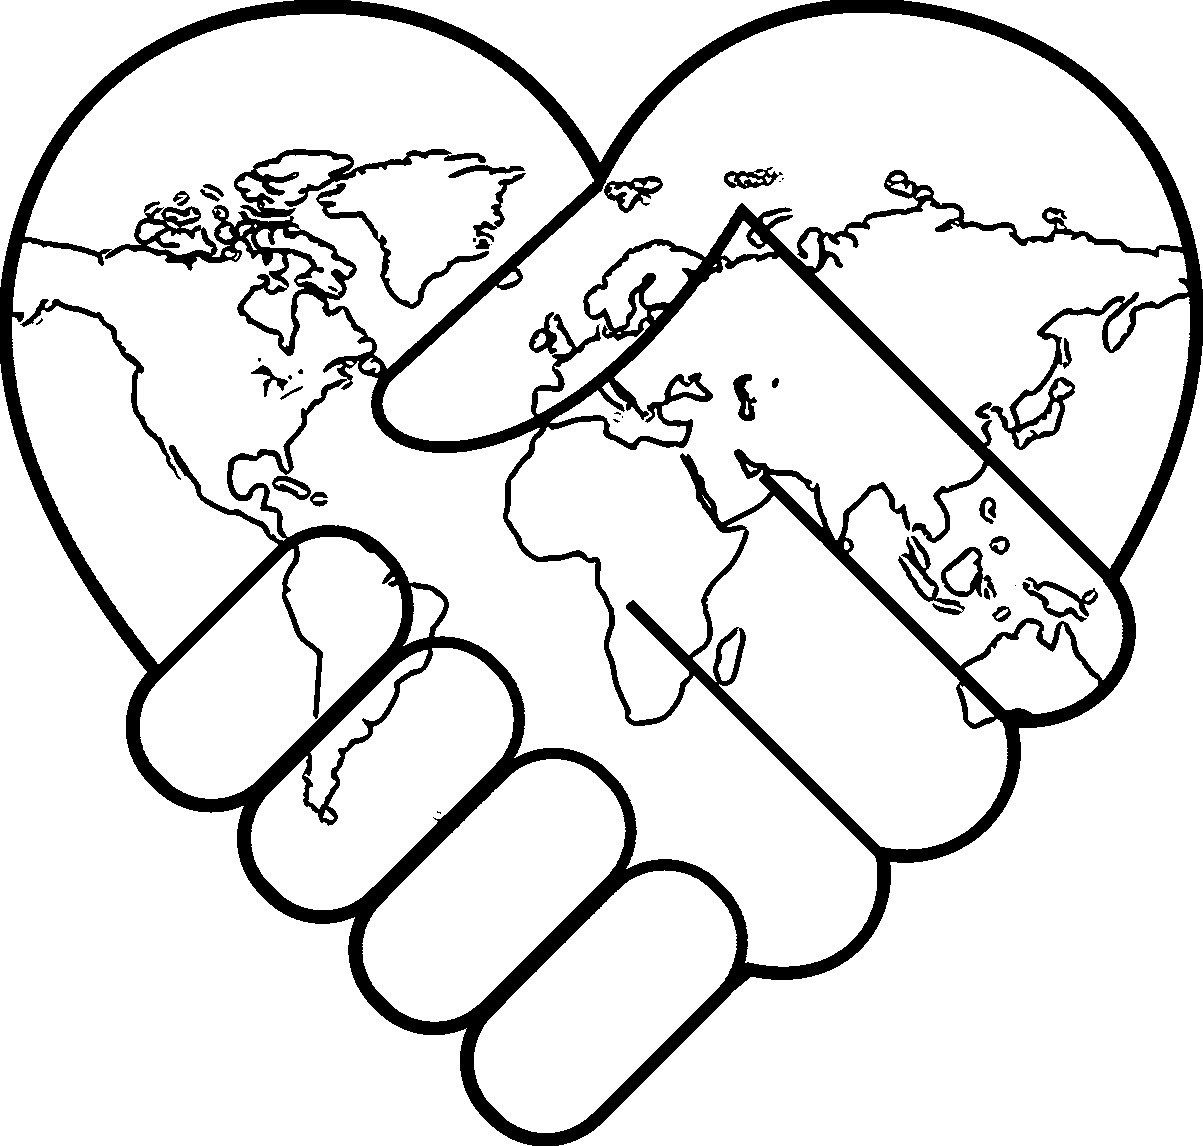 27 Inspired Image Of Peace Coloring Pages Entitlementtrap Com International Day Of Peace Peace Crafts Free Coloring Pages